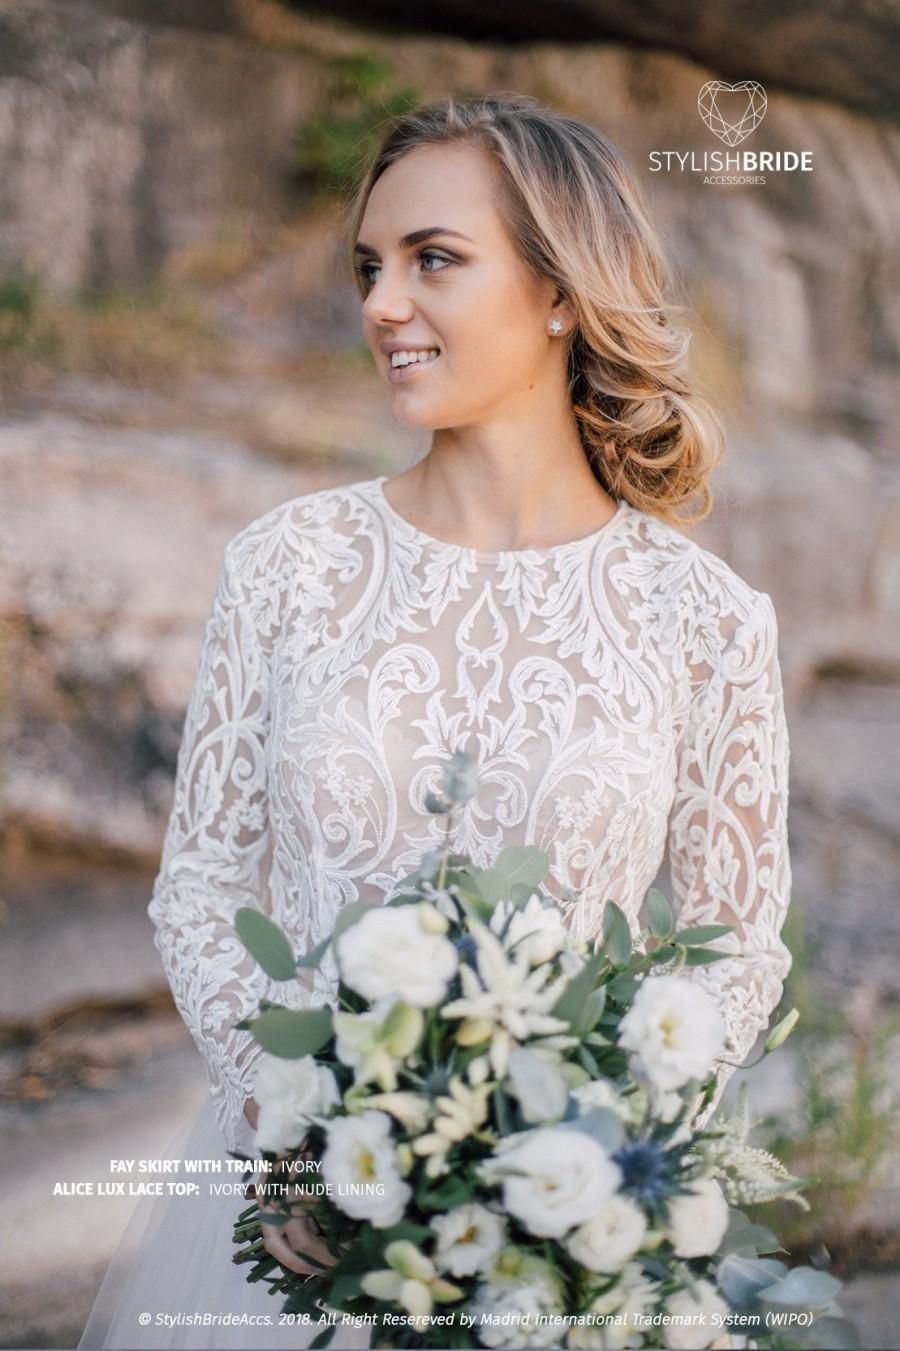 Wedding - Alice Lux Lace Top Wedding, New collection Lace crop top Ivory or White, Lace Prom Tops, Bridal Lace Crop Top Plus Size